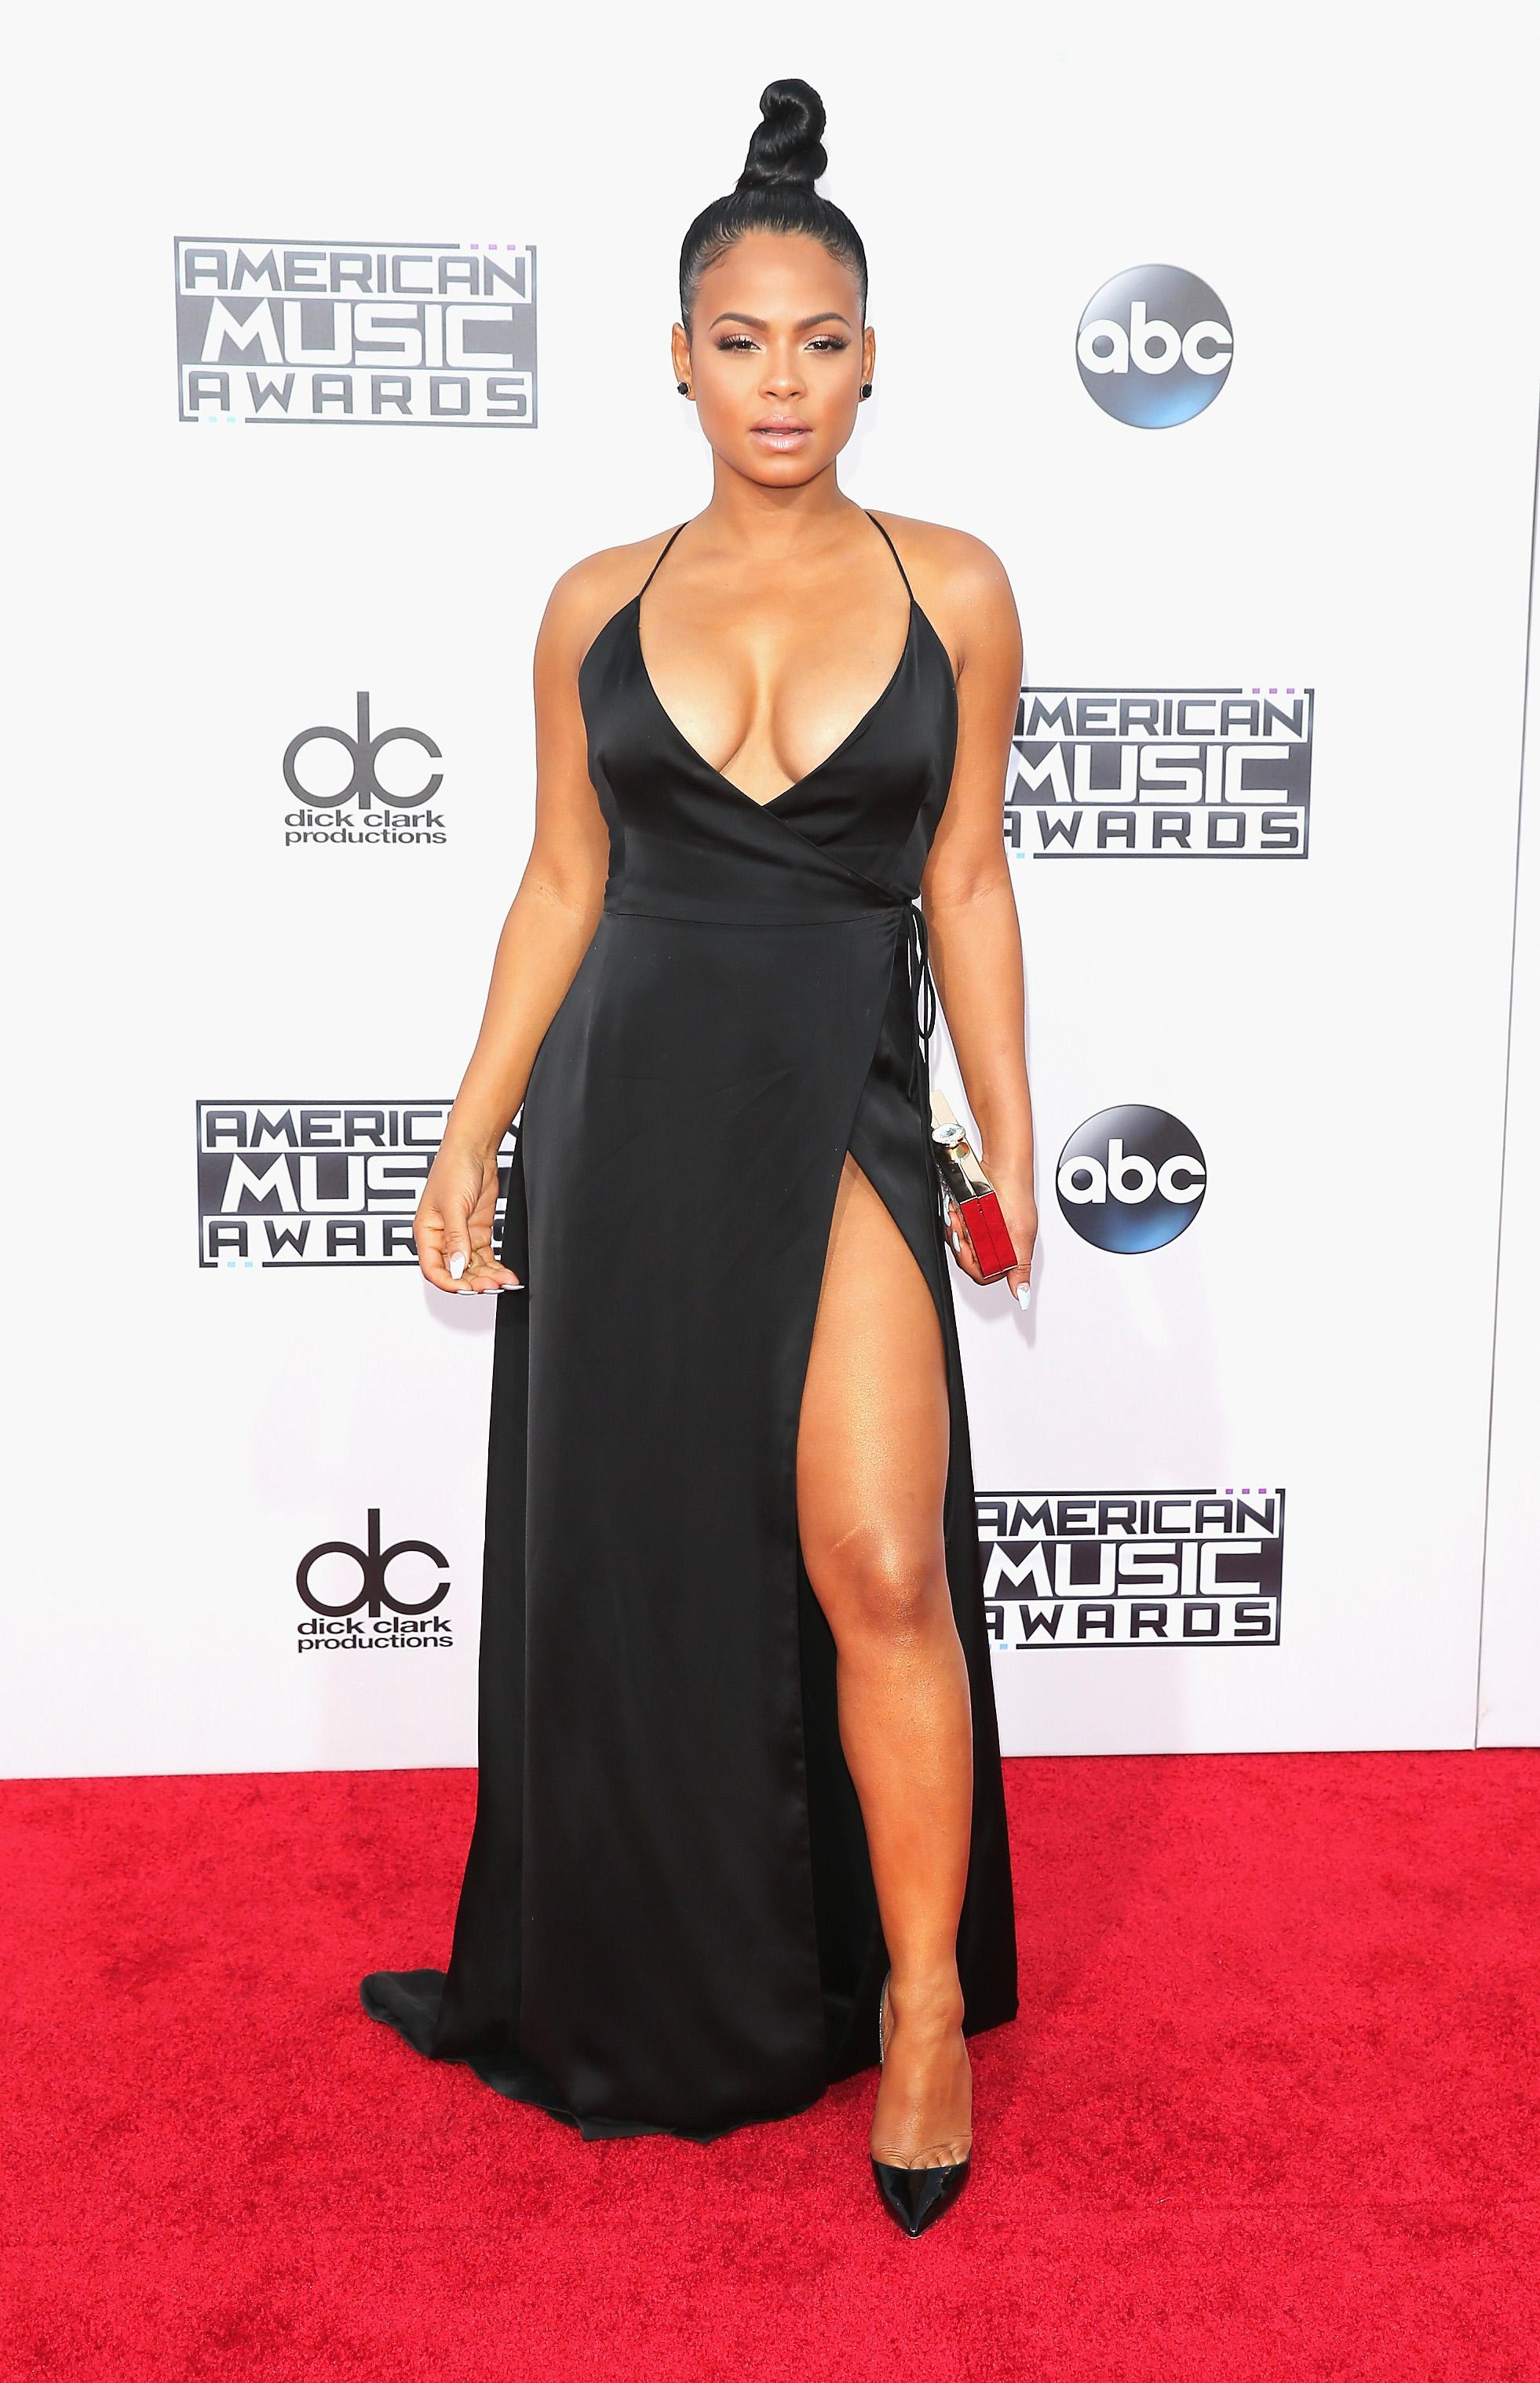 2015 American Music Awards The Best And Worst Dressed